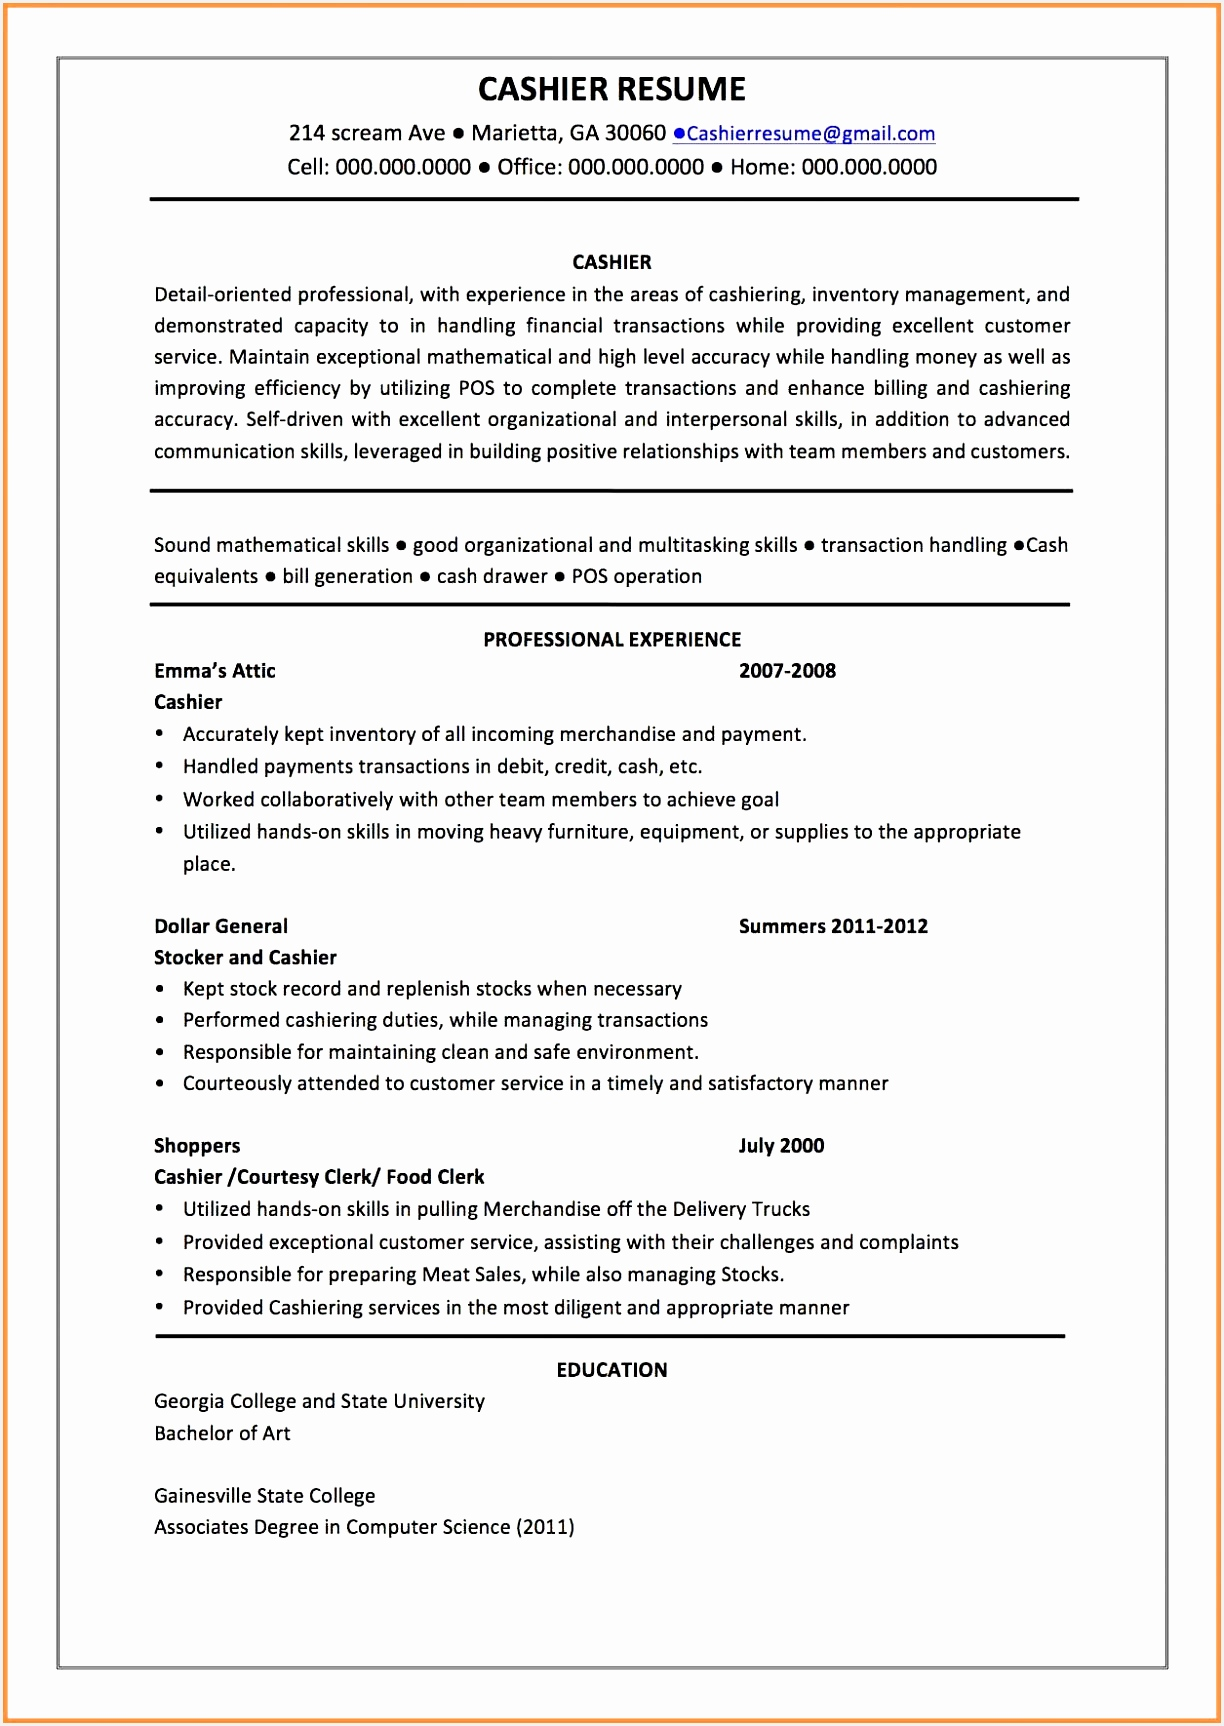 Free Resume Evaluation Fresh Lovely Pr Resume Template Elegant Dictionary Template 0d Archives 24 Inspirational17261224